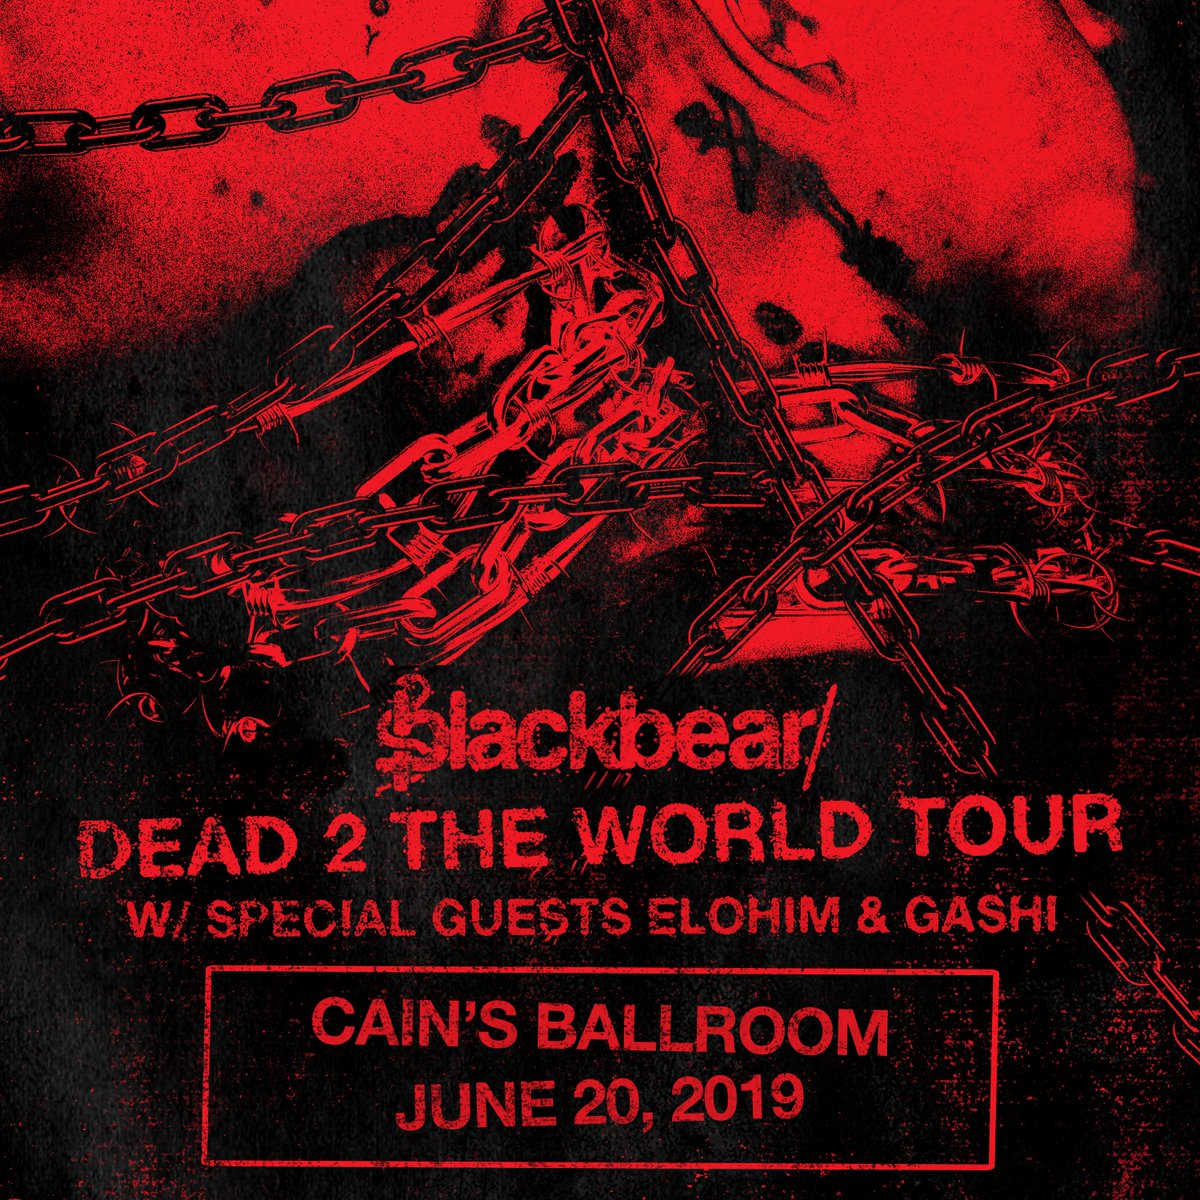 Presale tickets are available now thru 10pm Tuesday for @iamblackbear's #dead2theworldtour on June 20! Use promo code VIBES here... https://www.ticketfly.com/purchase/event/1851447 …